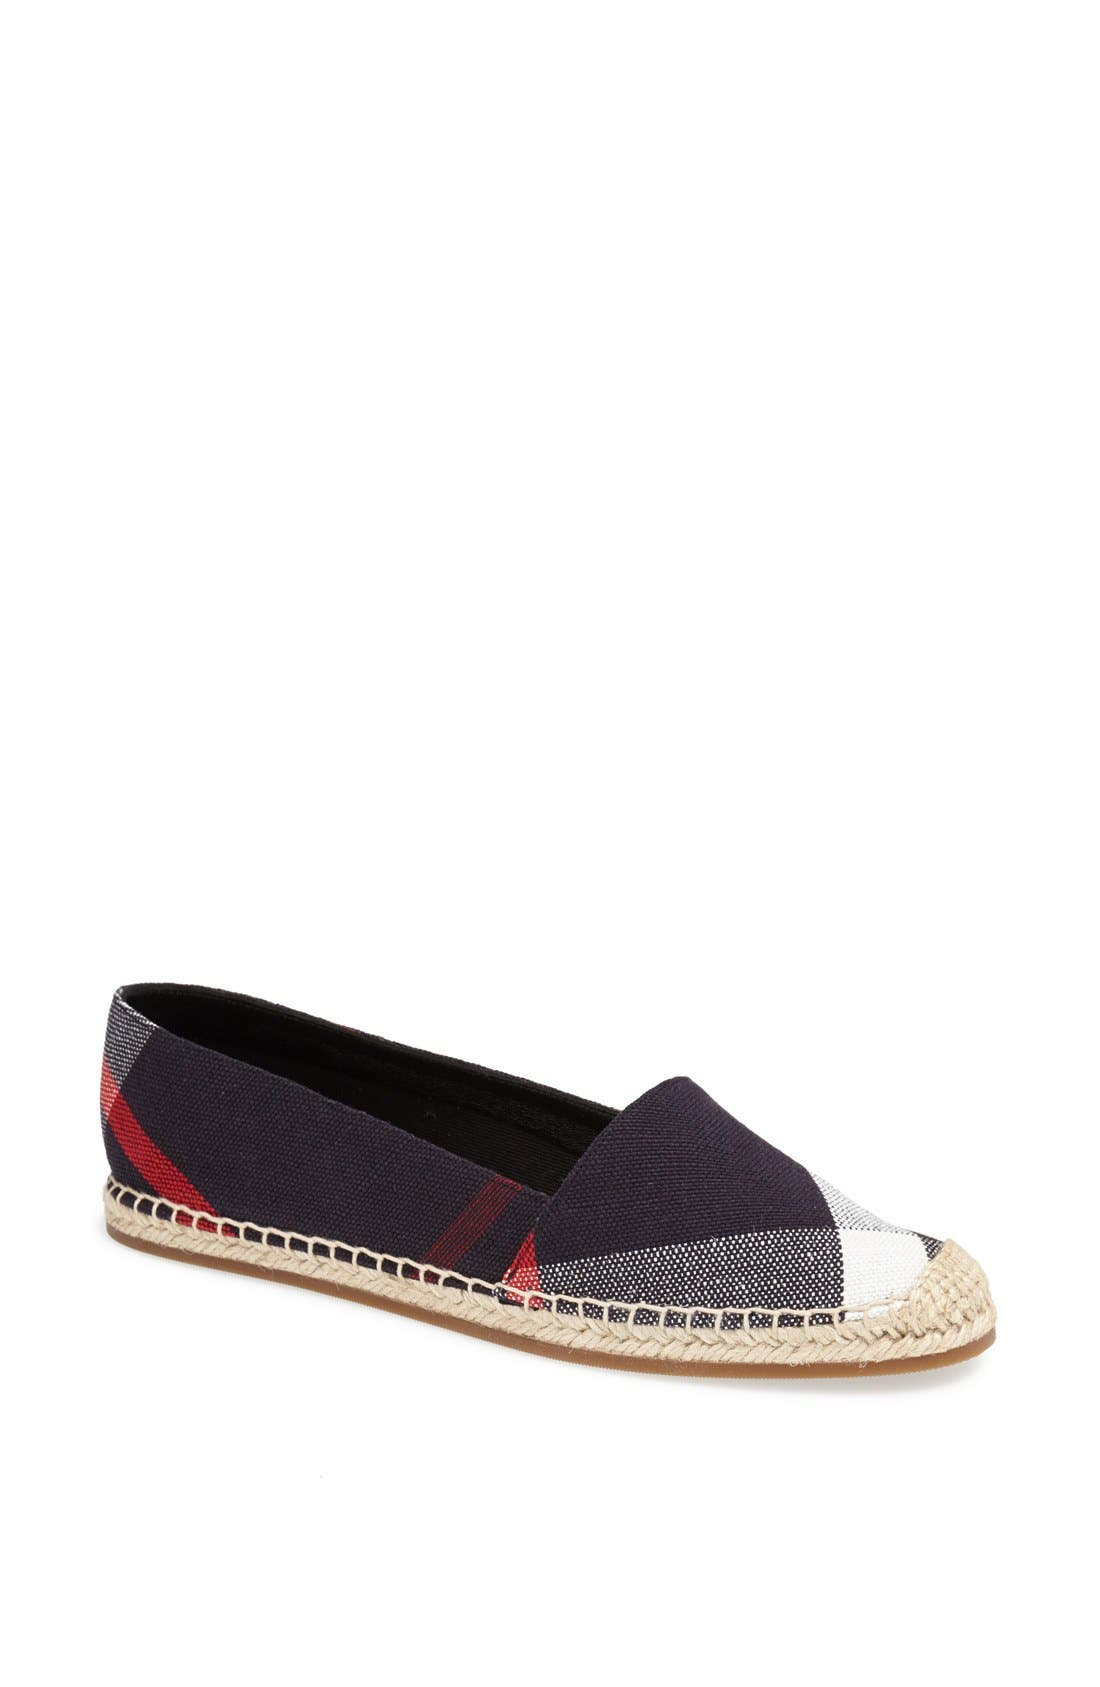 Burberry Hodgeson Check Print Espadrille Flat (Women)